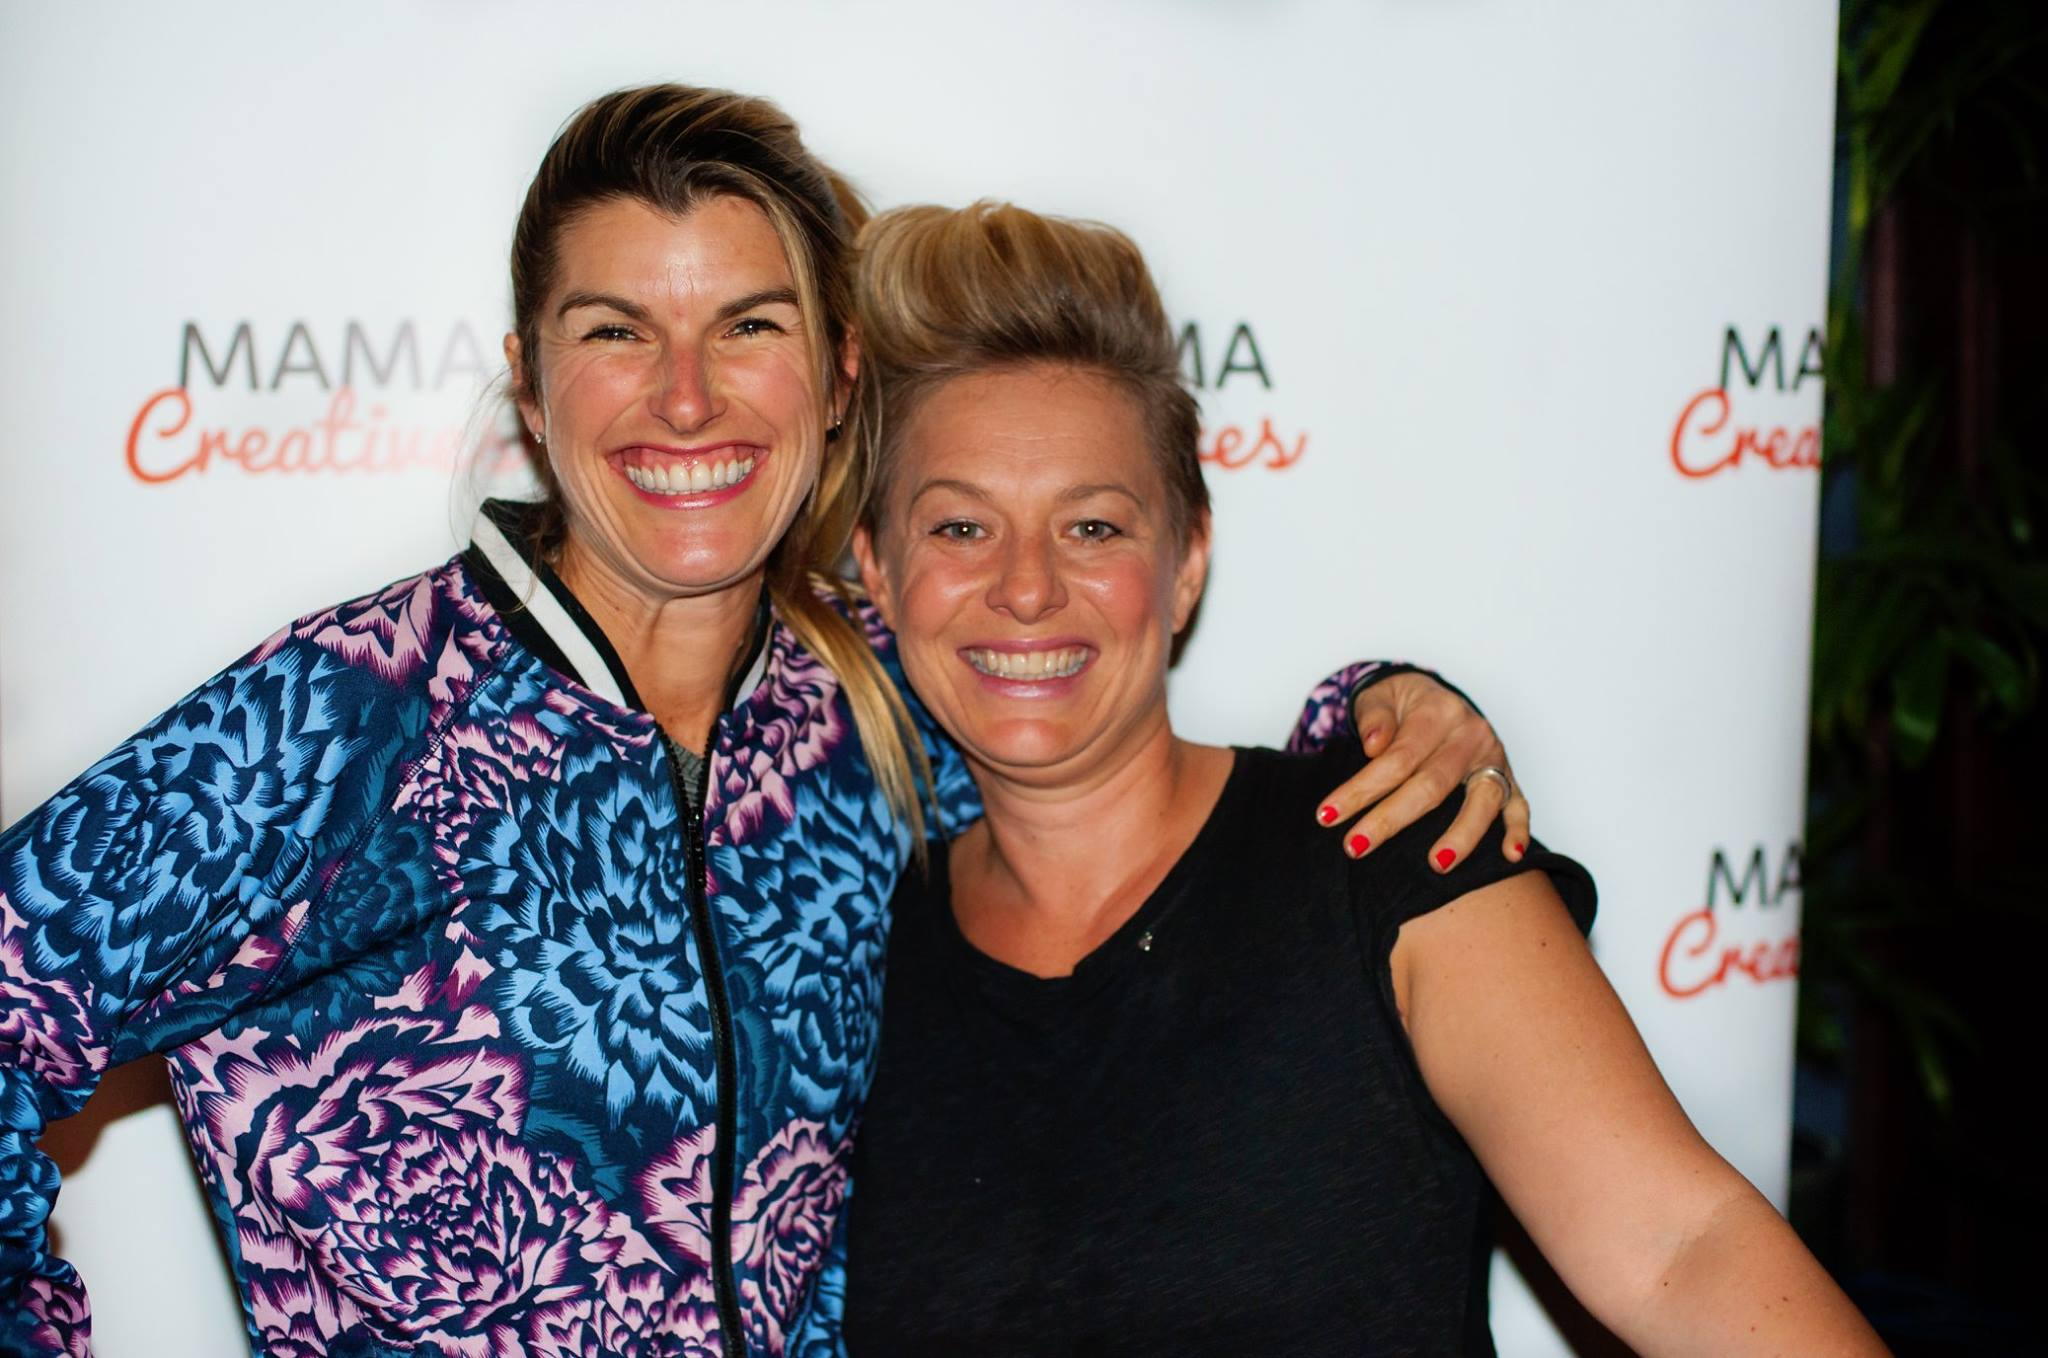 Two fabulous mamas, Lizzy Williamson, founder of Two Minute Moves, with Kylee Fitzpatrick, founder of TEAM WOMEN AUSTRALIA at our Mama Creatives evening talk.